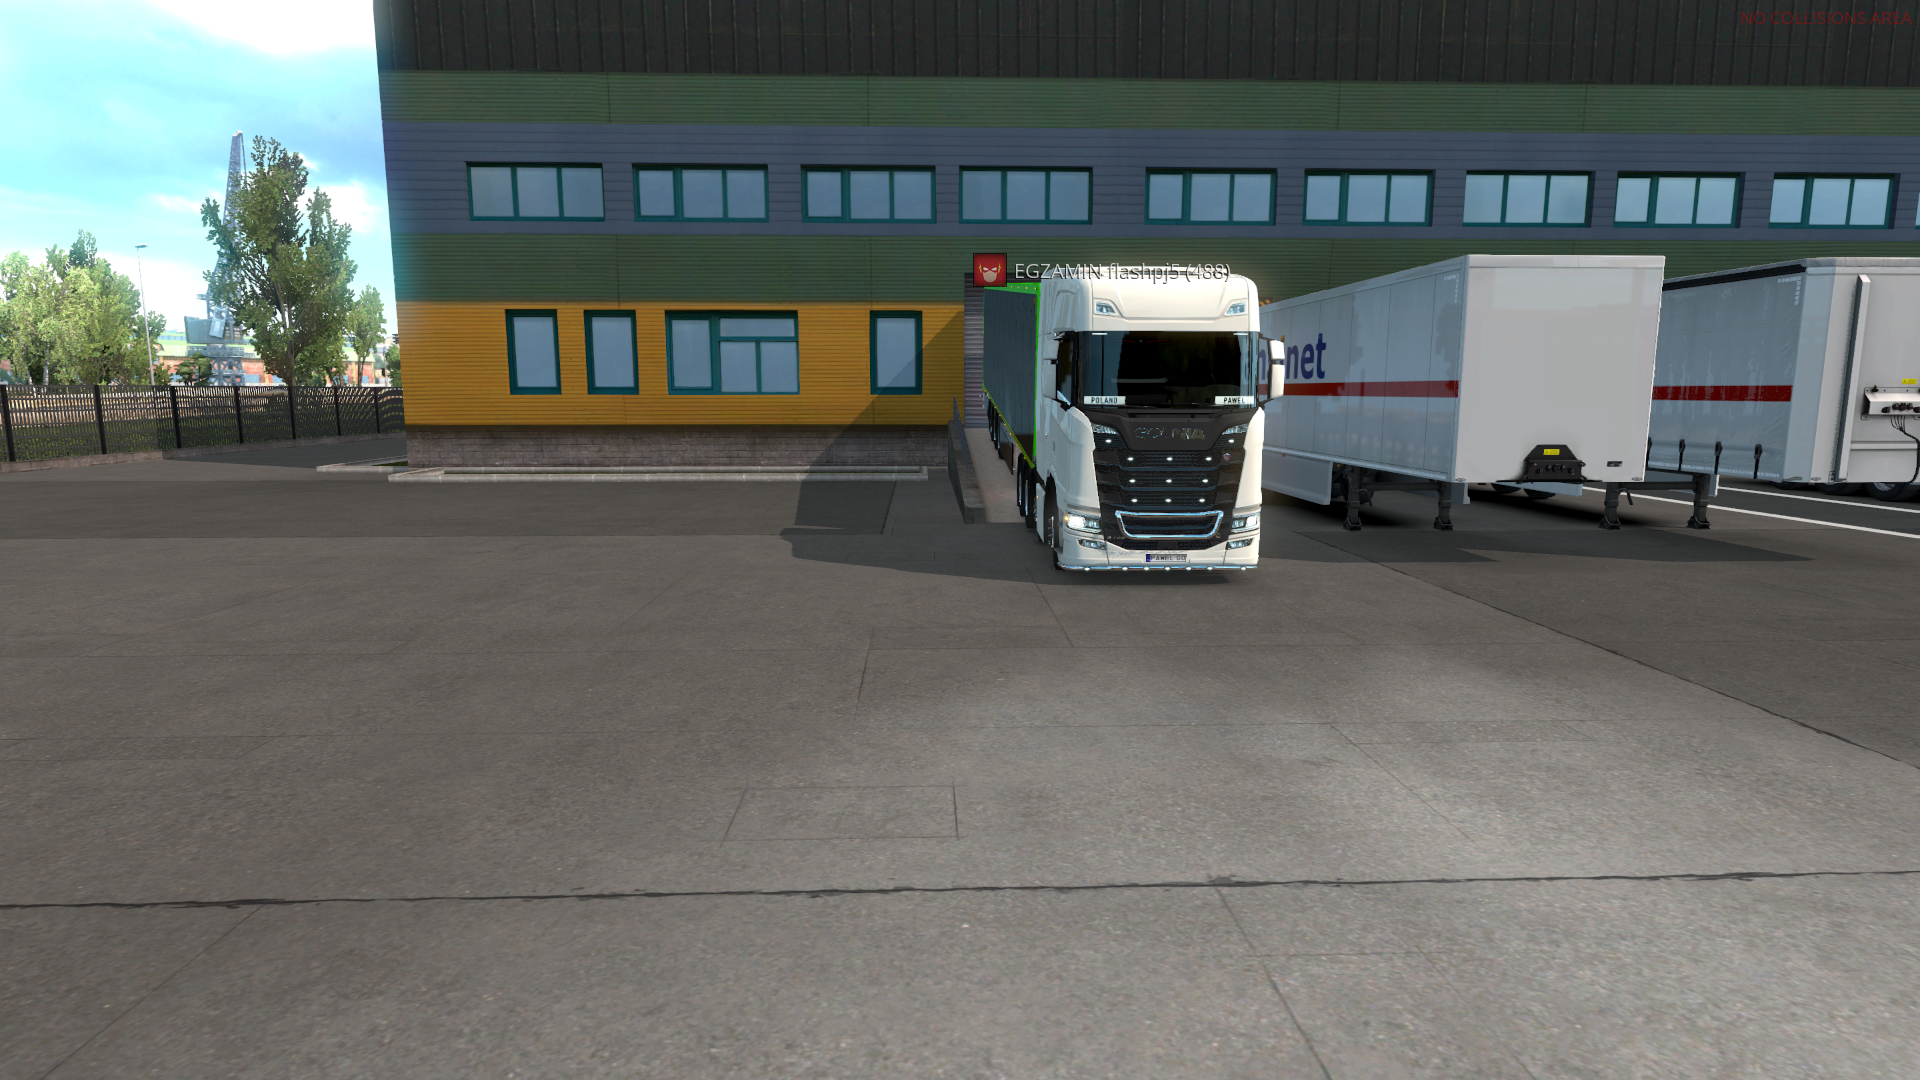 ets2_20181111_175317_00.png